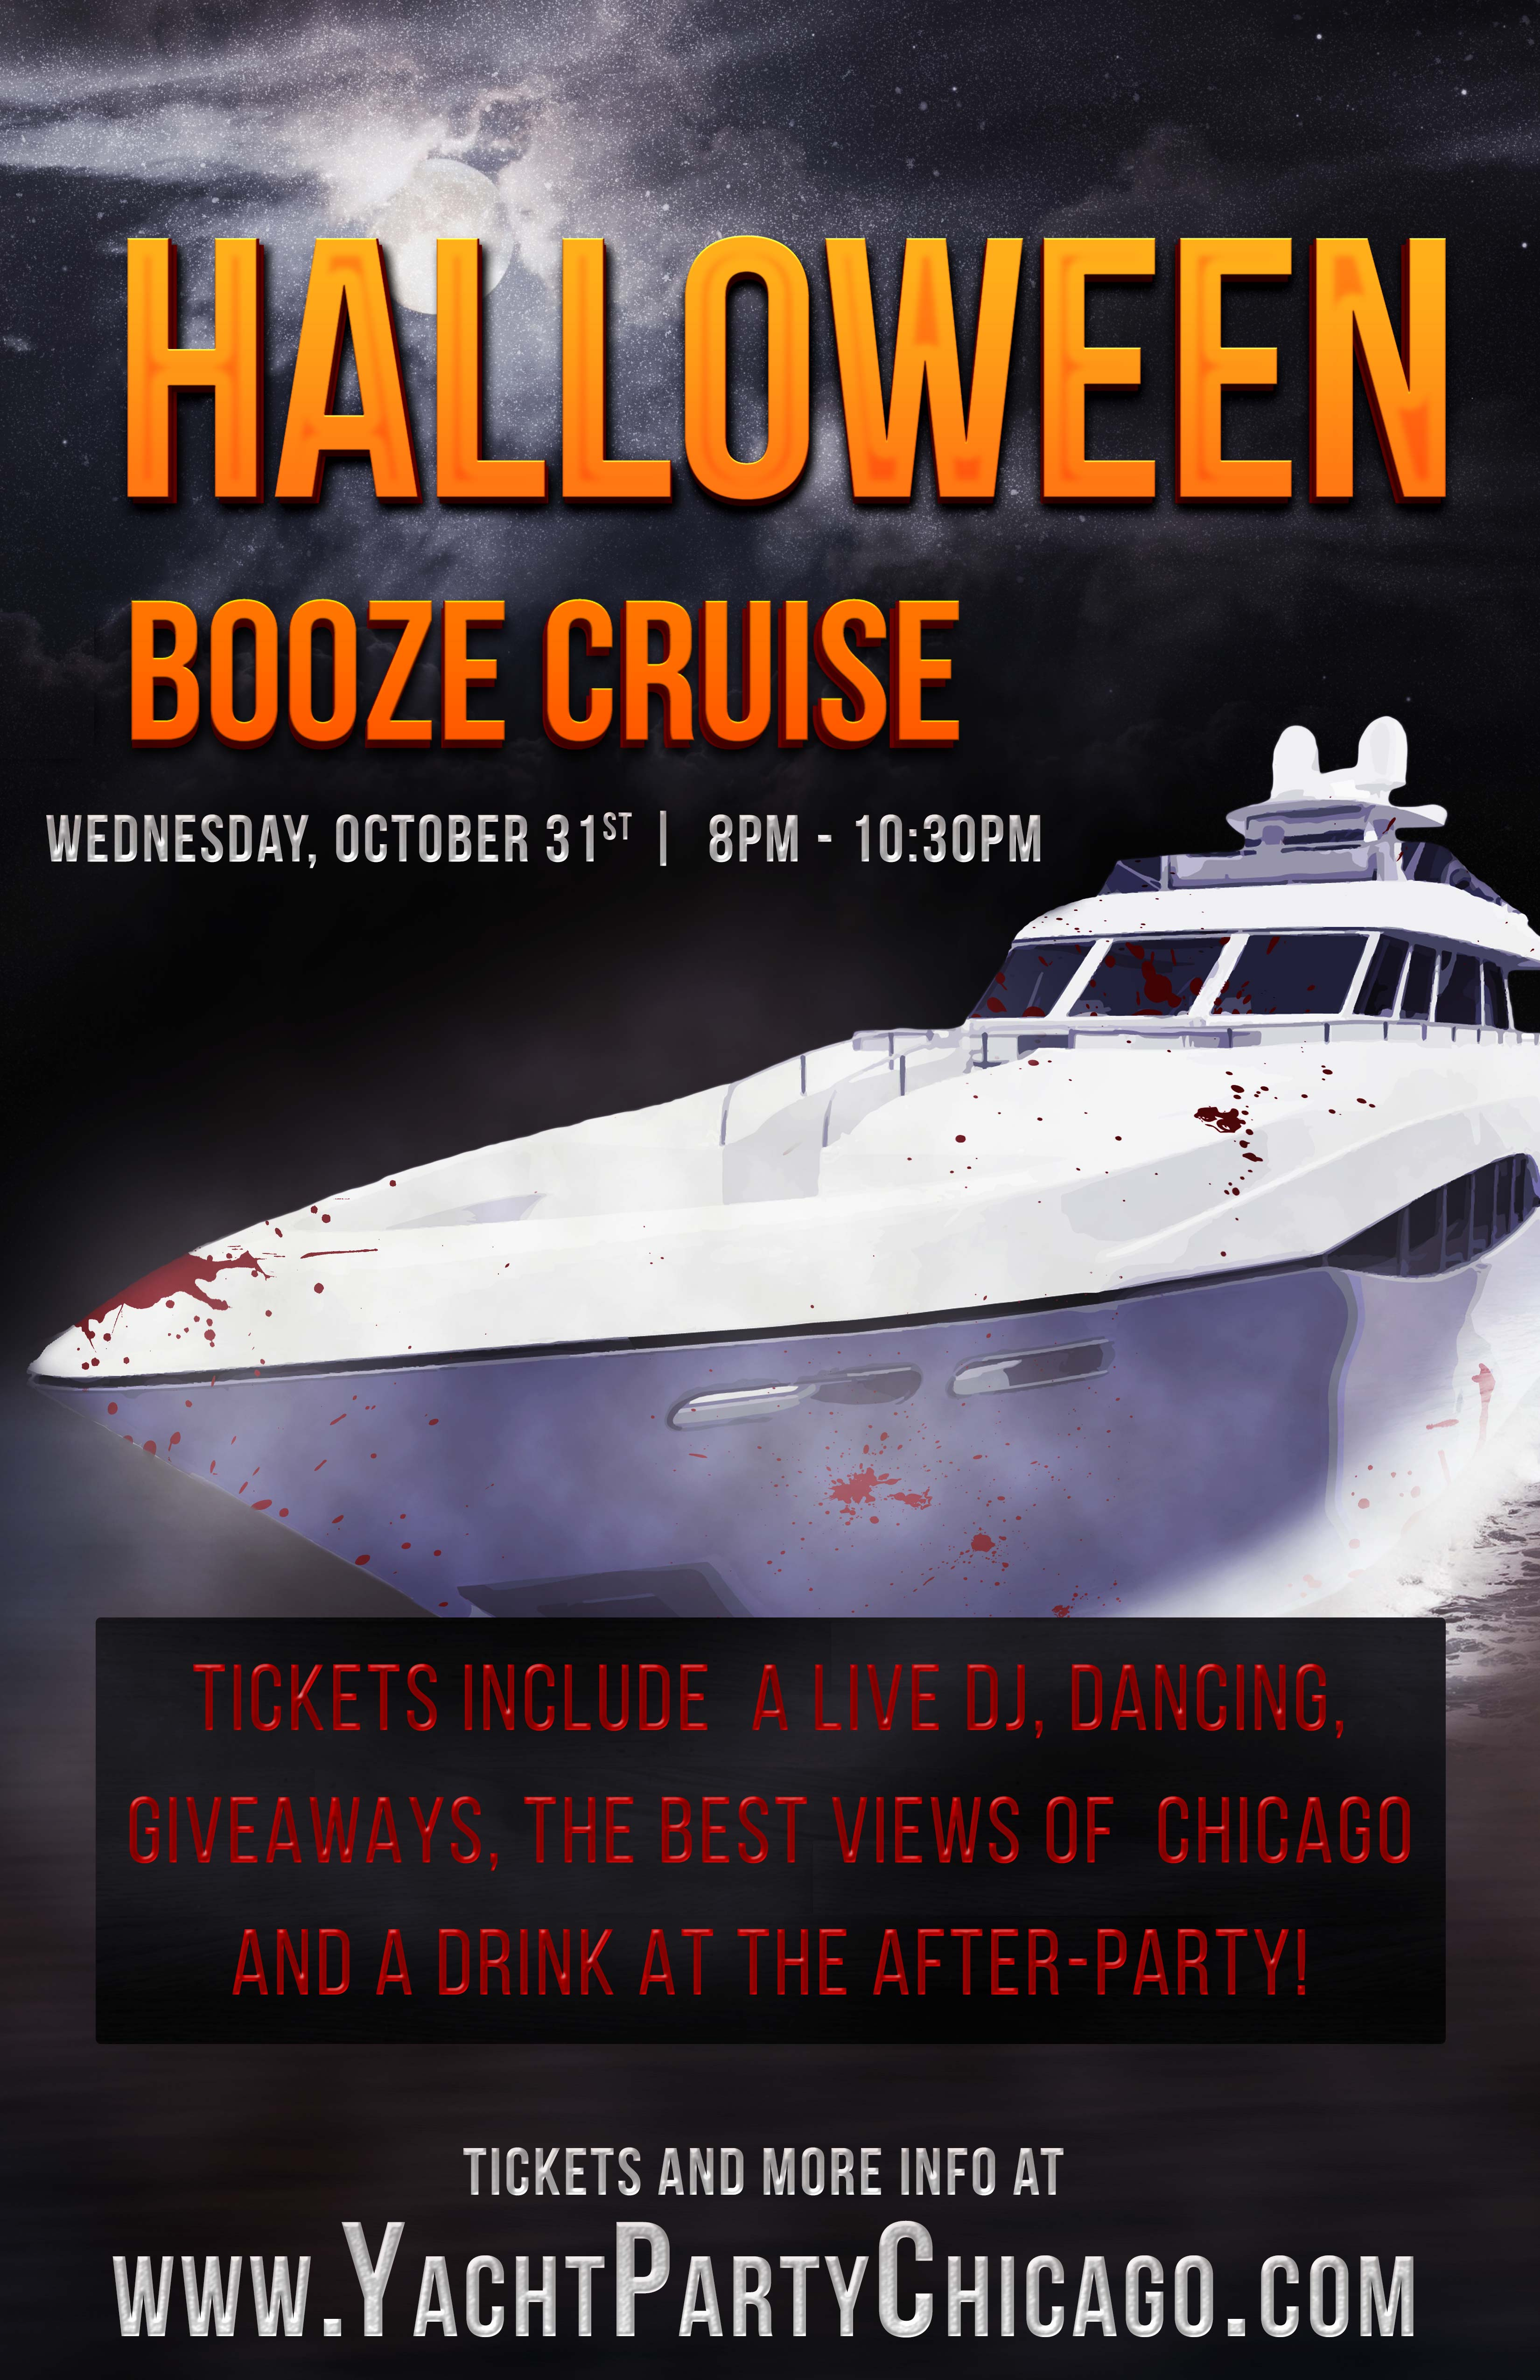 Halloween Booze Cruise Party - Tickets include a Live DJ, Dancing, Giveaways, the best views of Chicago and a drink at the after party!